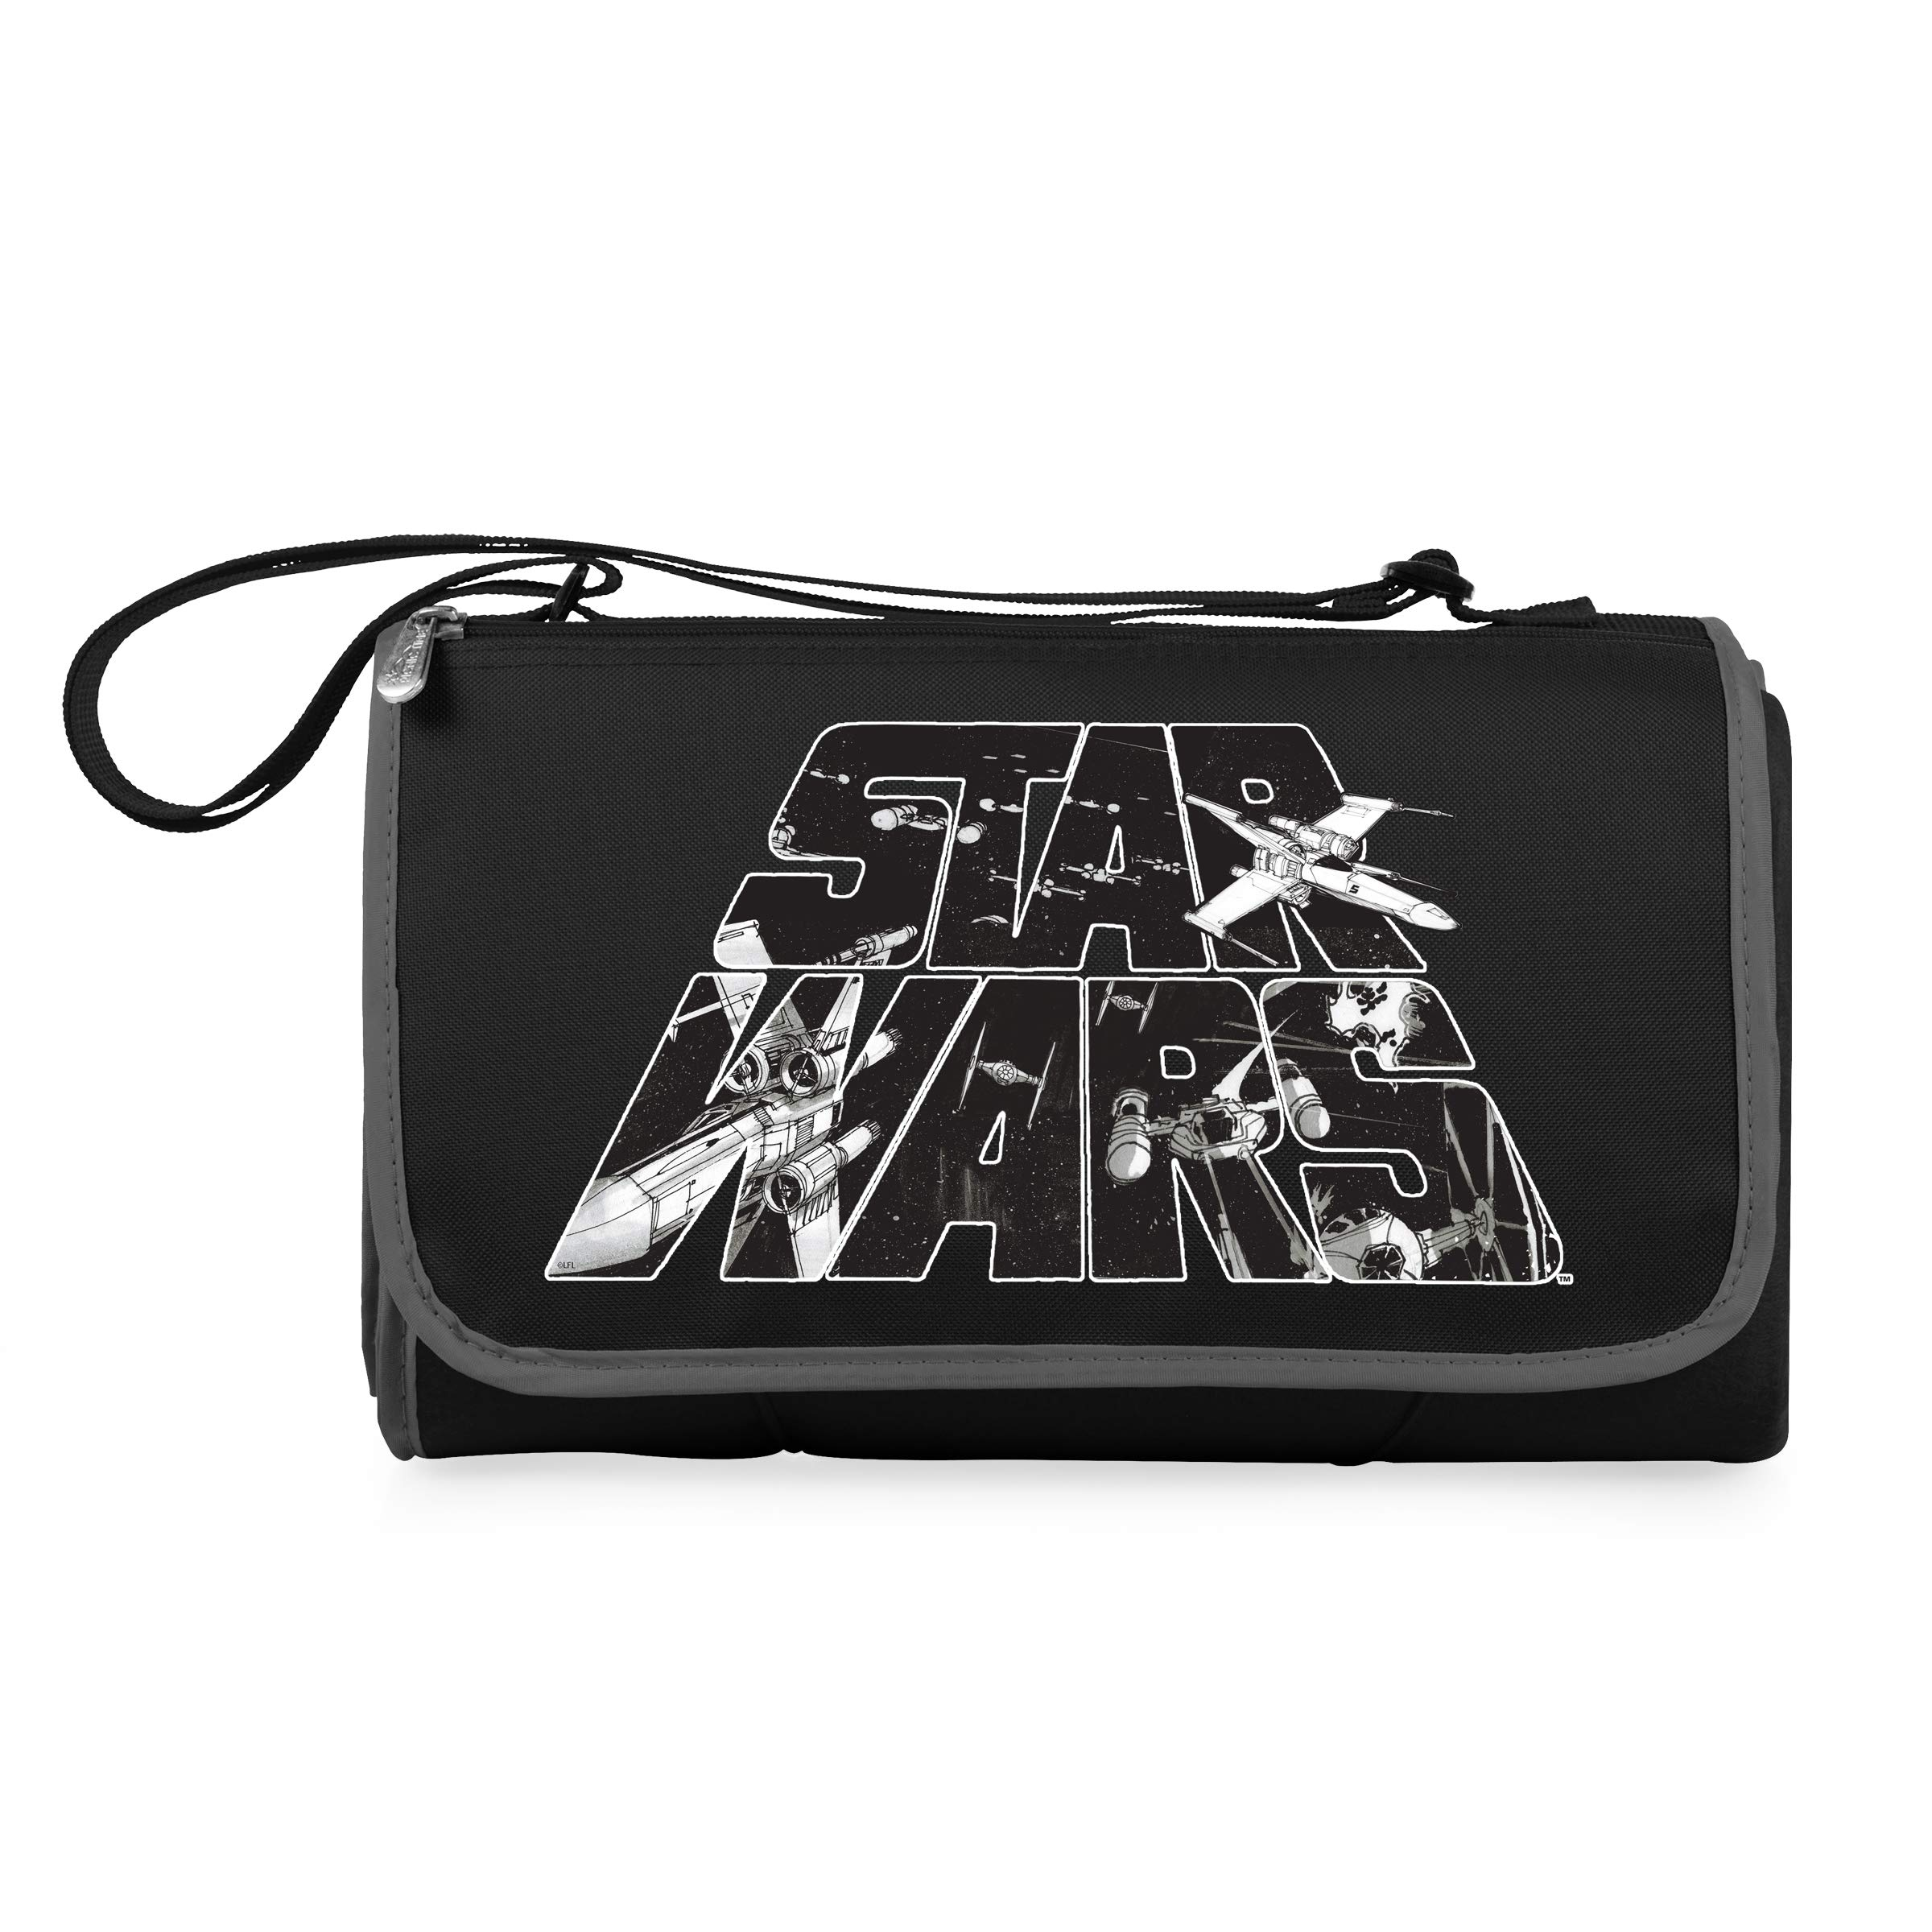 Lucas/Star Wars Outdoor Picnic Blanket Tote, Black by PICNIC TIME